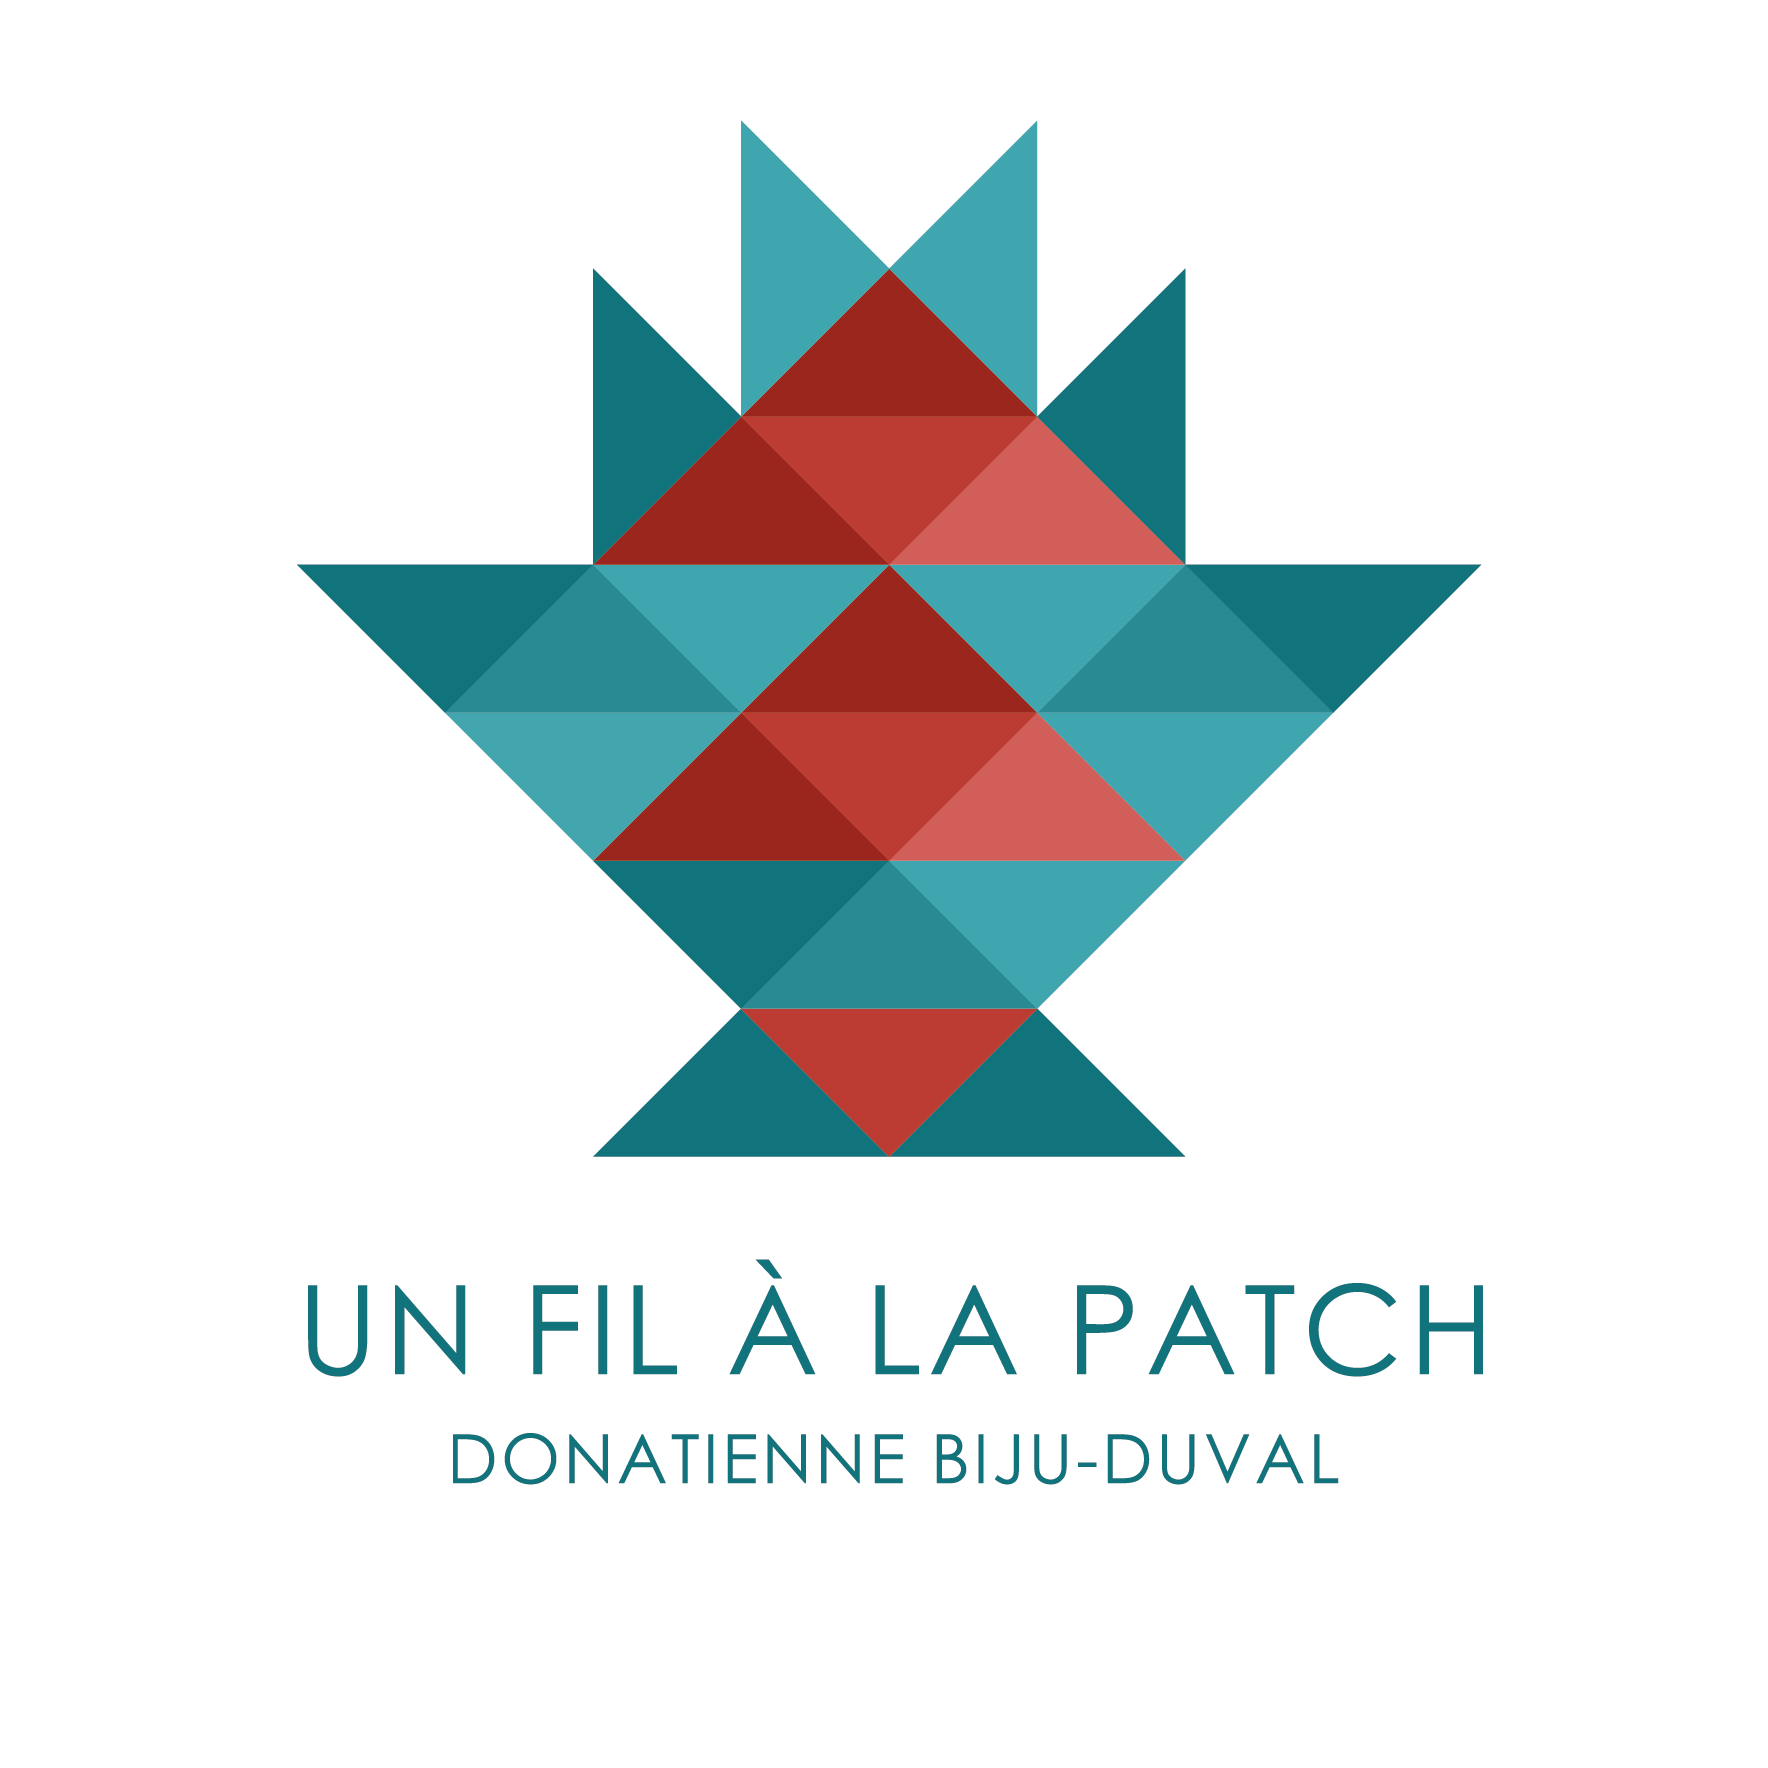 Un fil à la patch